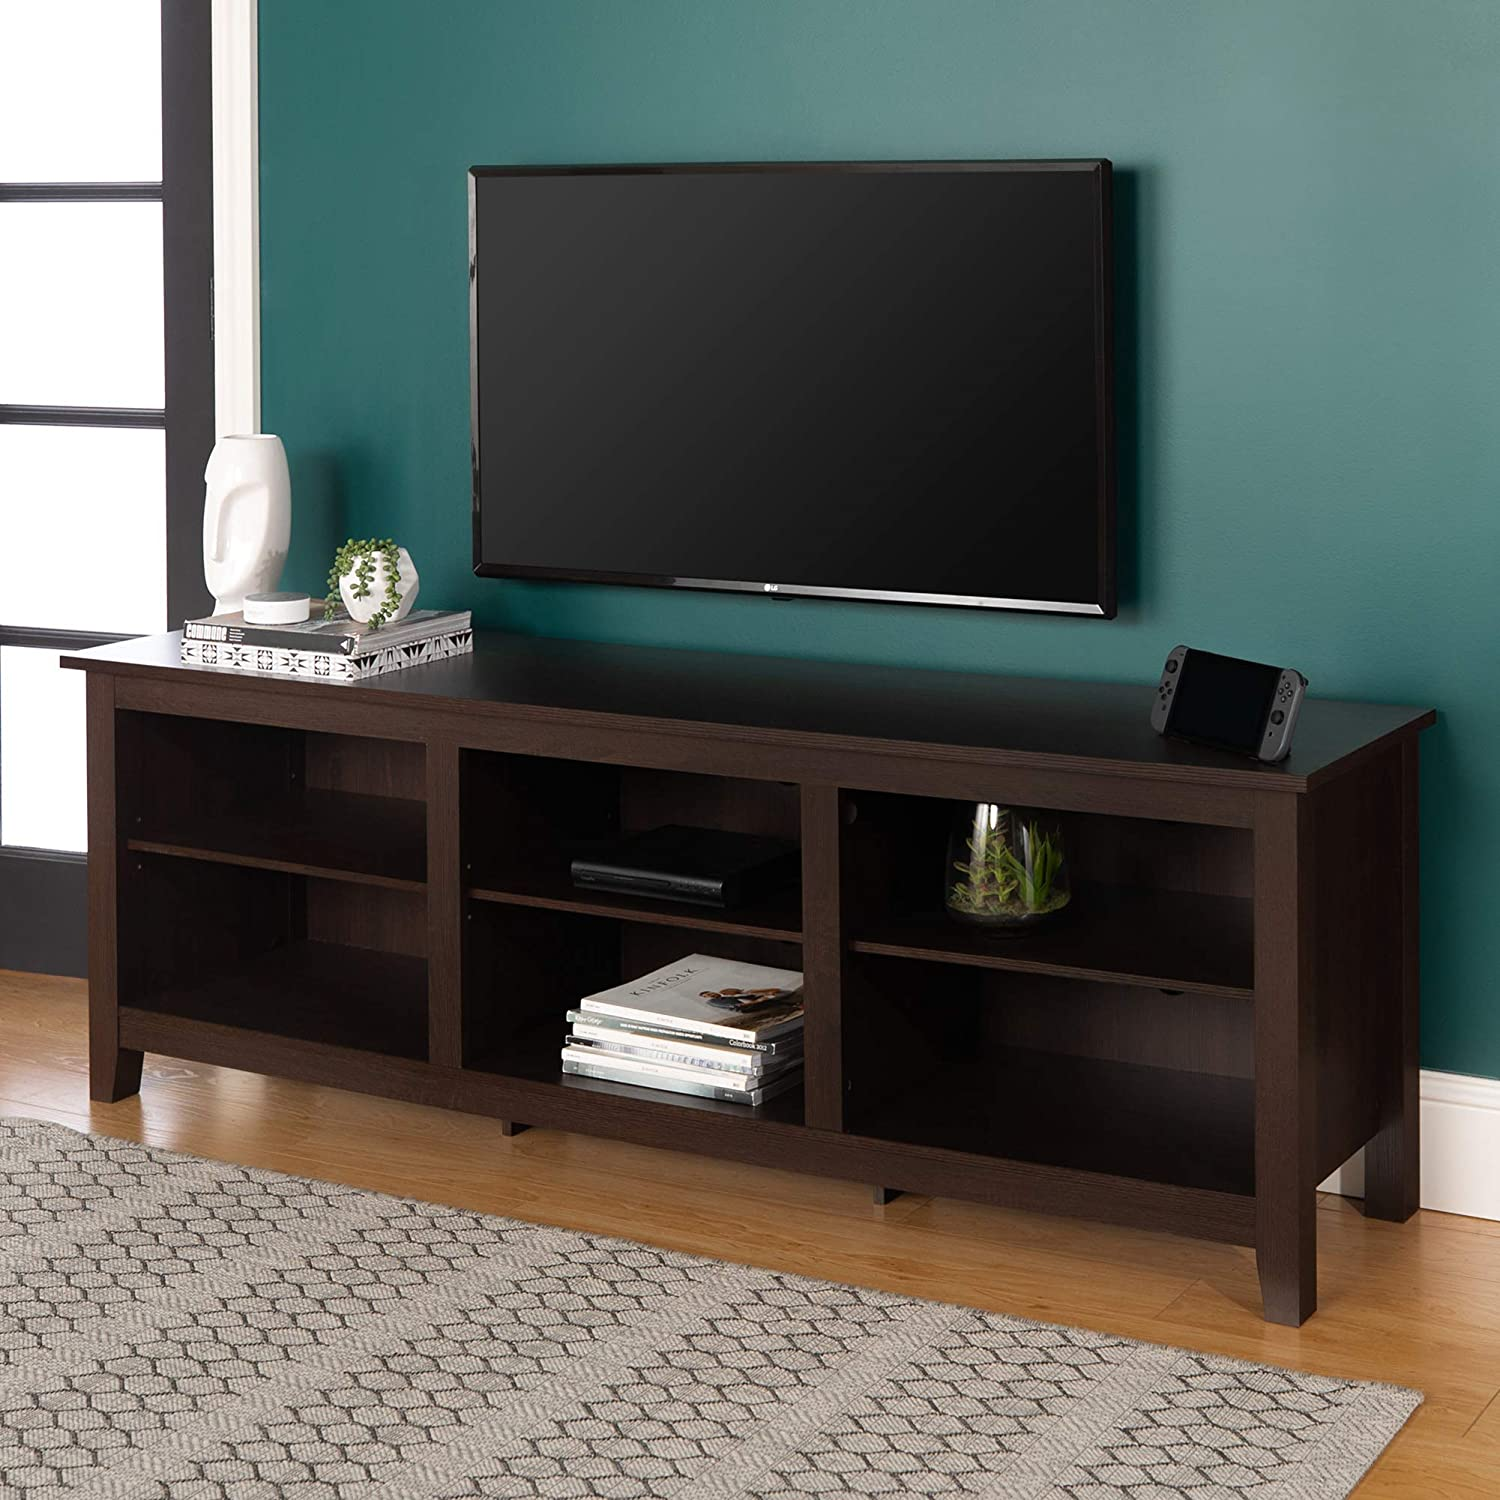 Amazon Com Walker Edison Wren Classic 6 Cubby Tv Stand For Tvs Up To 80 Inches 70 Inch Espresso Furniture Decor